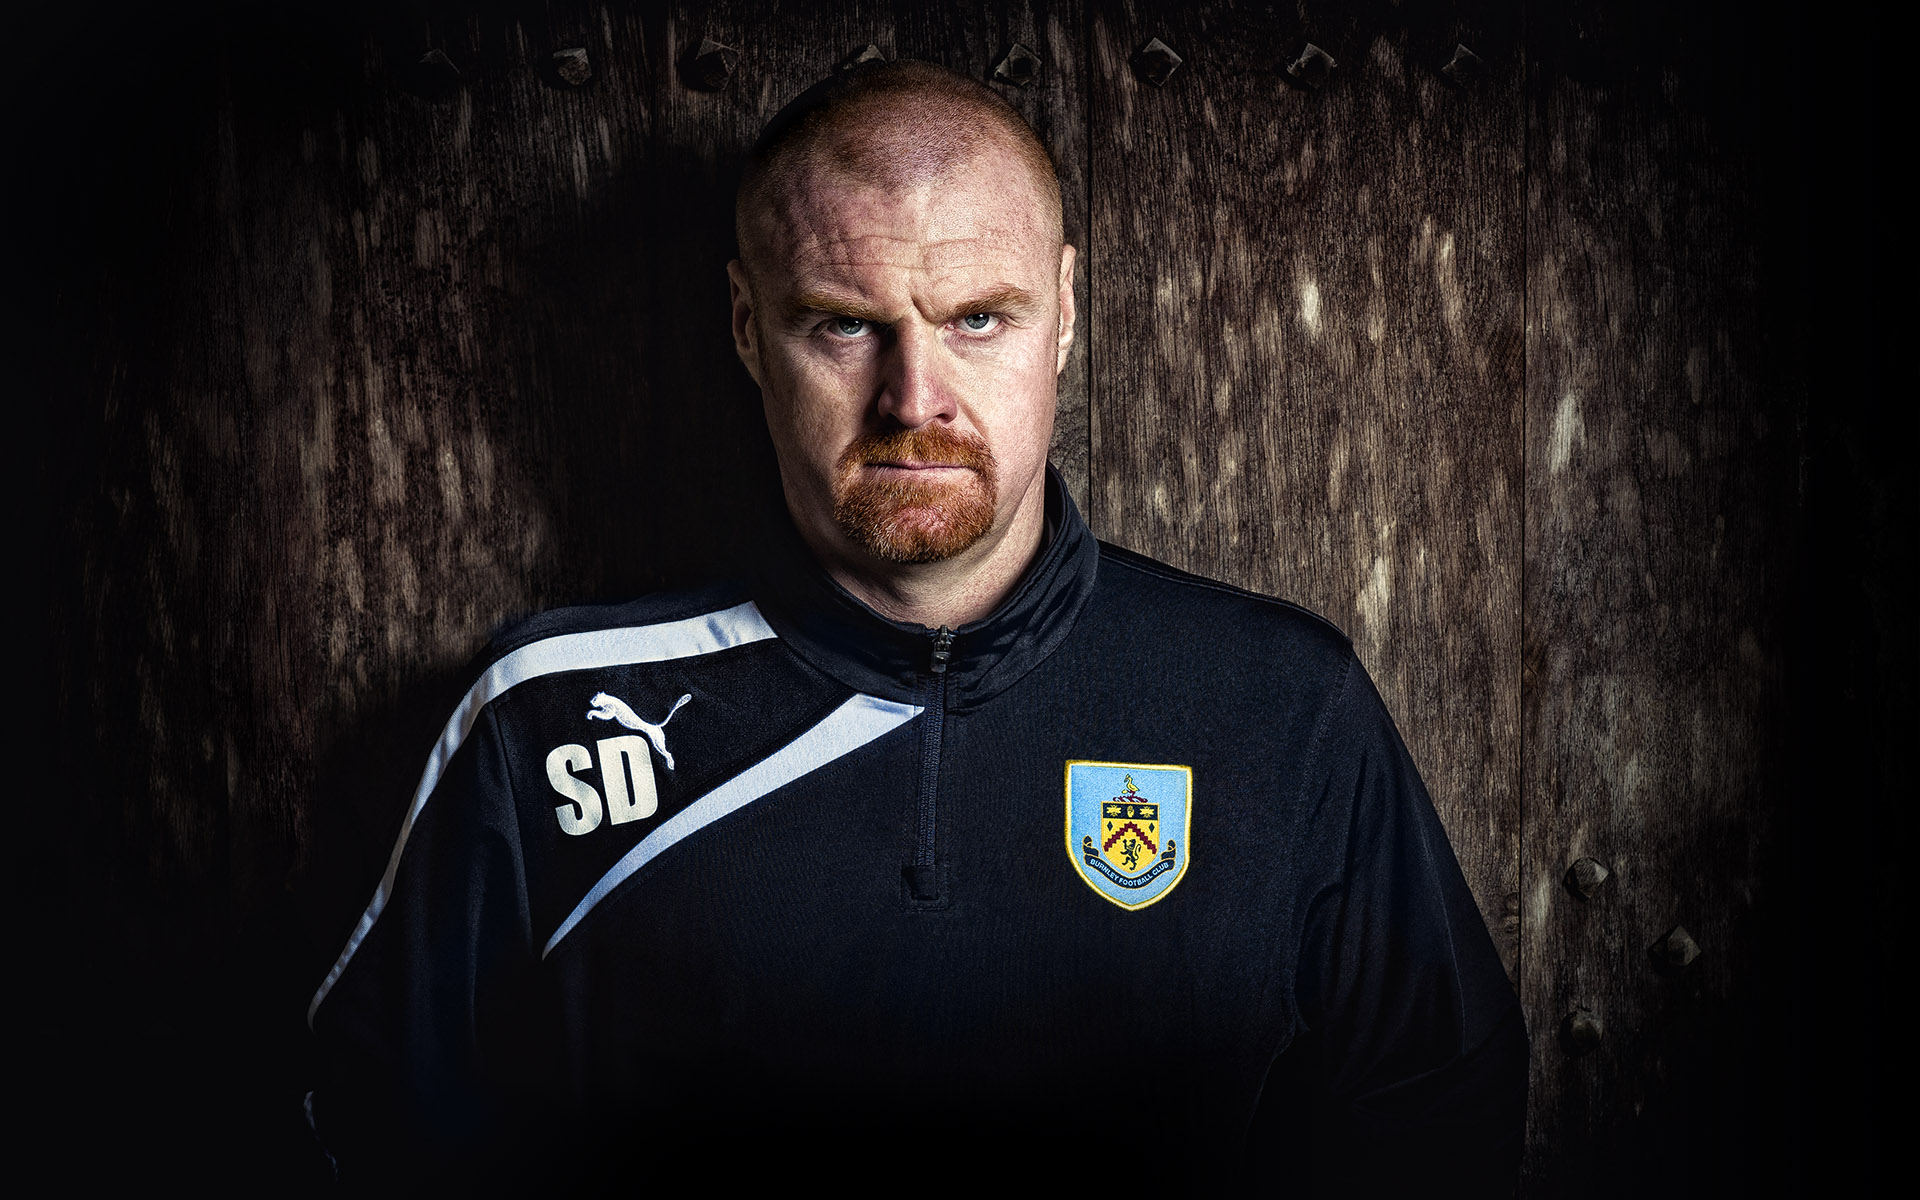 Sean Dyche Burnley F.C. ©Paul Cooper